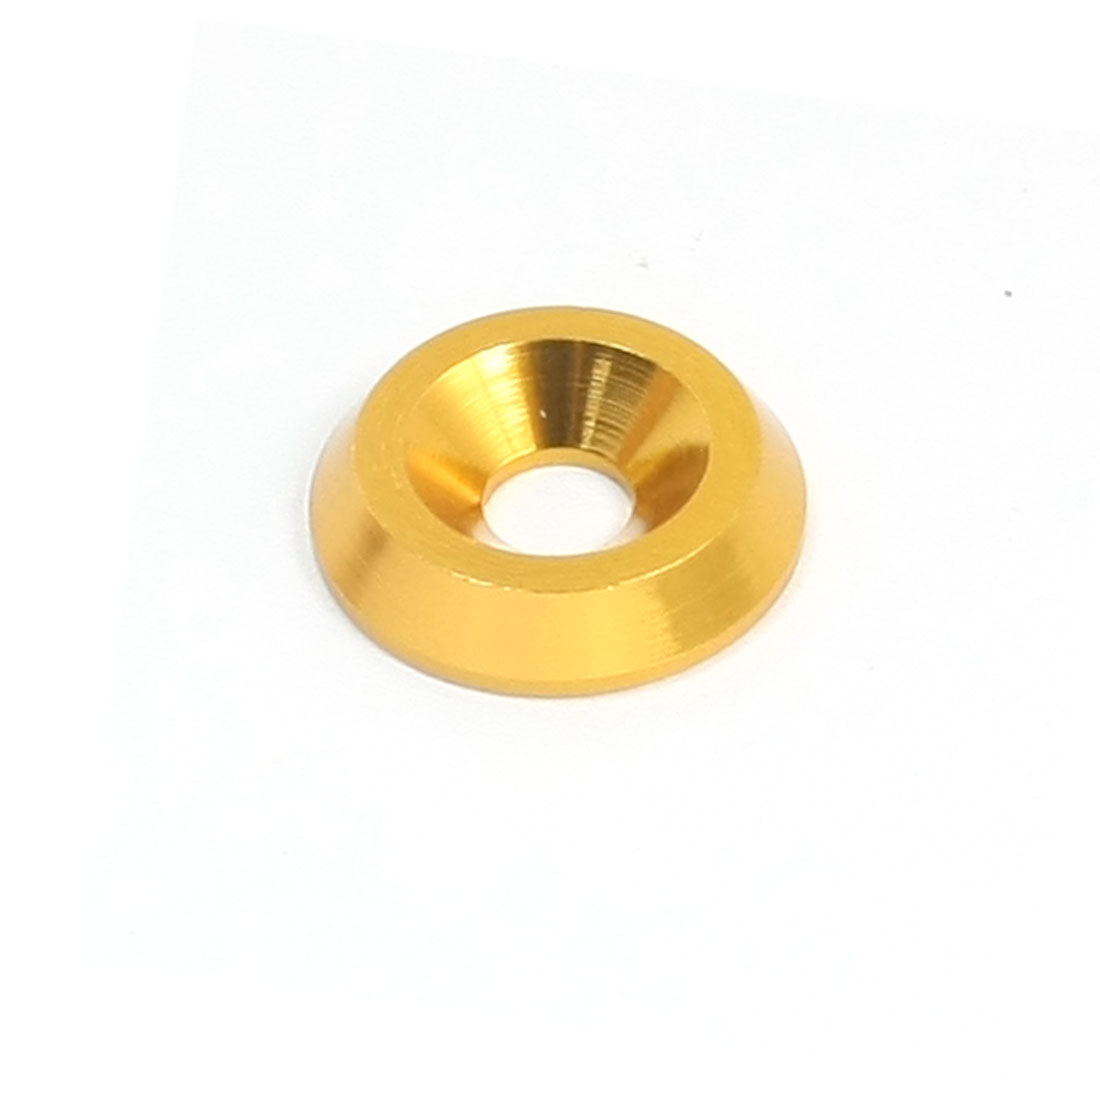 Replacement Gold Tone Aluminium Alloy RC Model Wheel Spacer Washer Adaptor 4mm x 14mm x 3mm